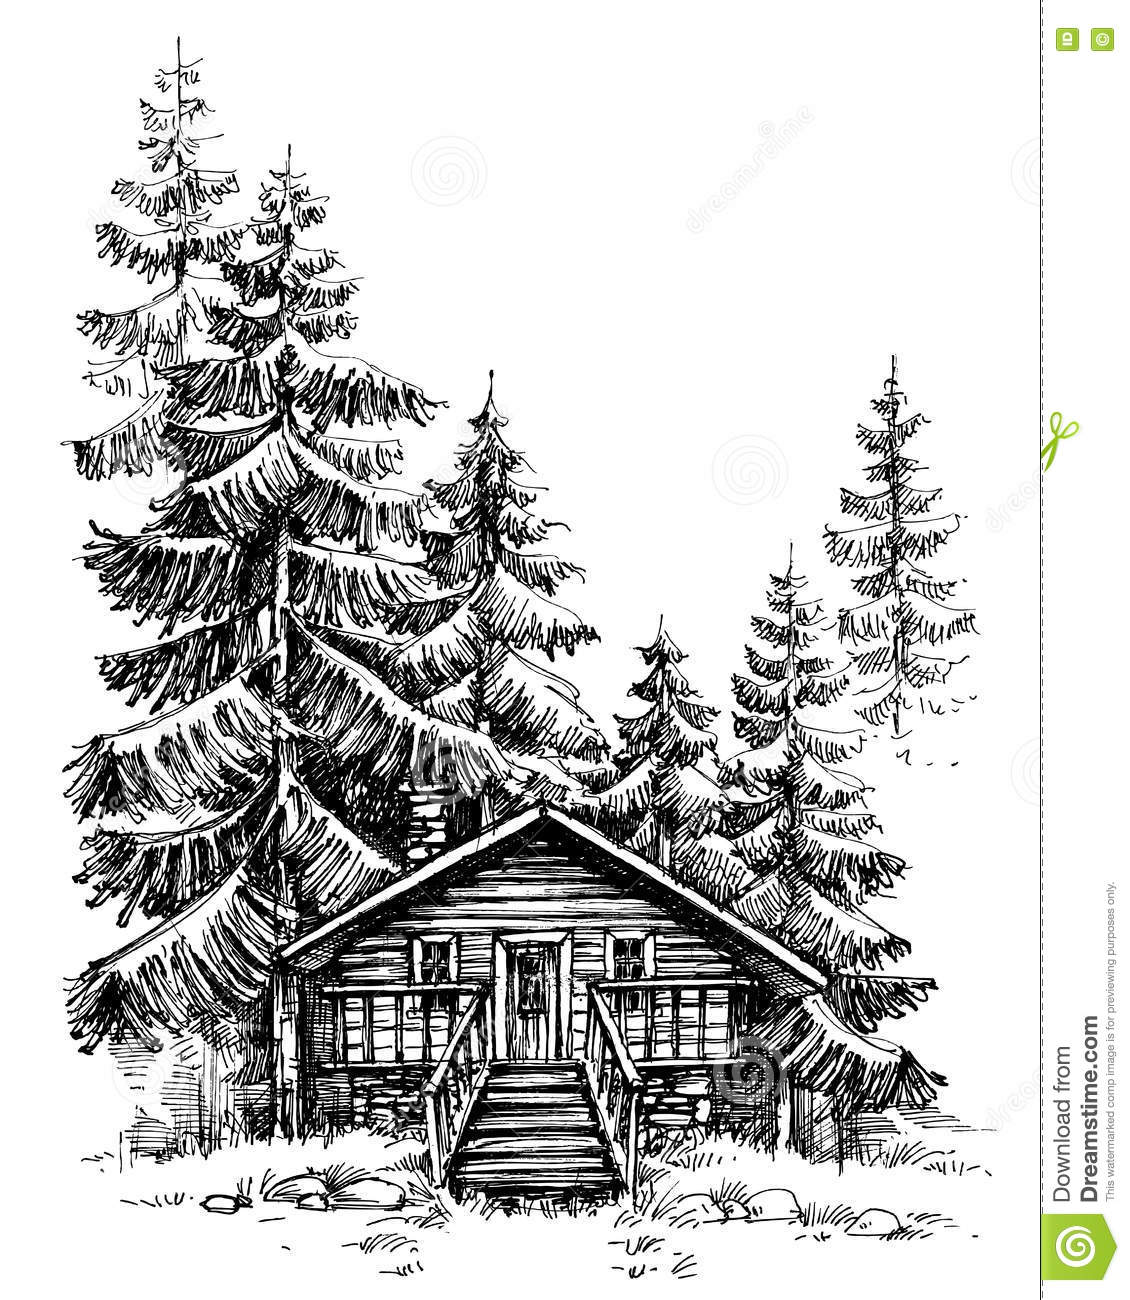 Landscape Illustration Vector Free: A Wooden Cabin In The Pine Forest Stock Vector